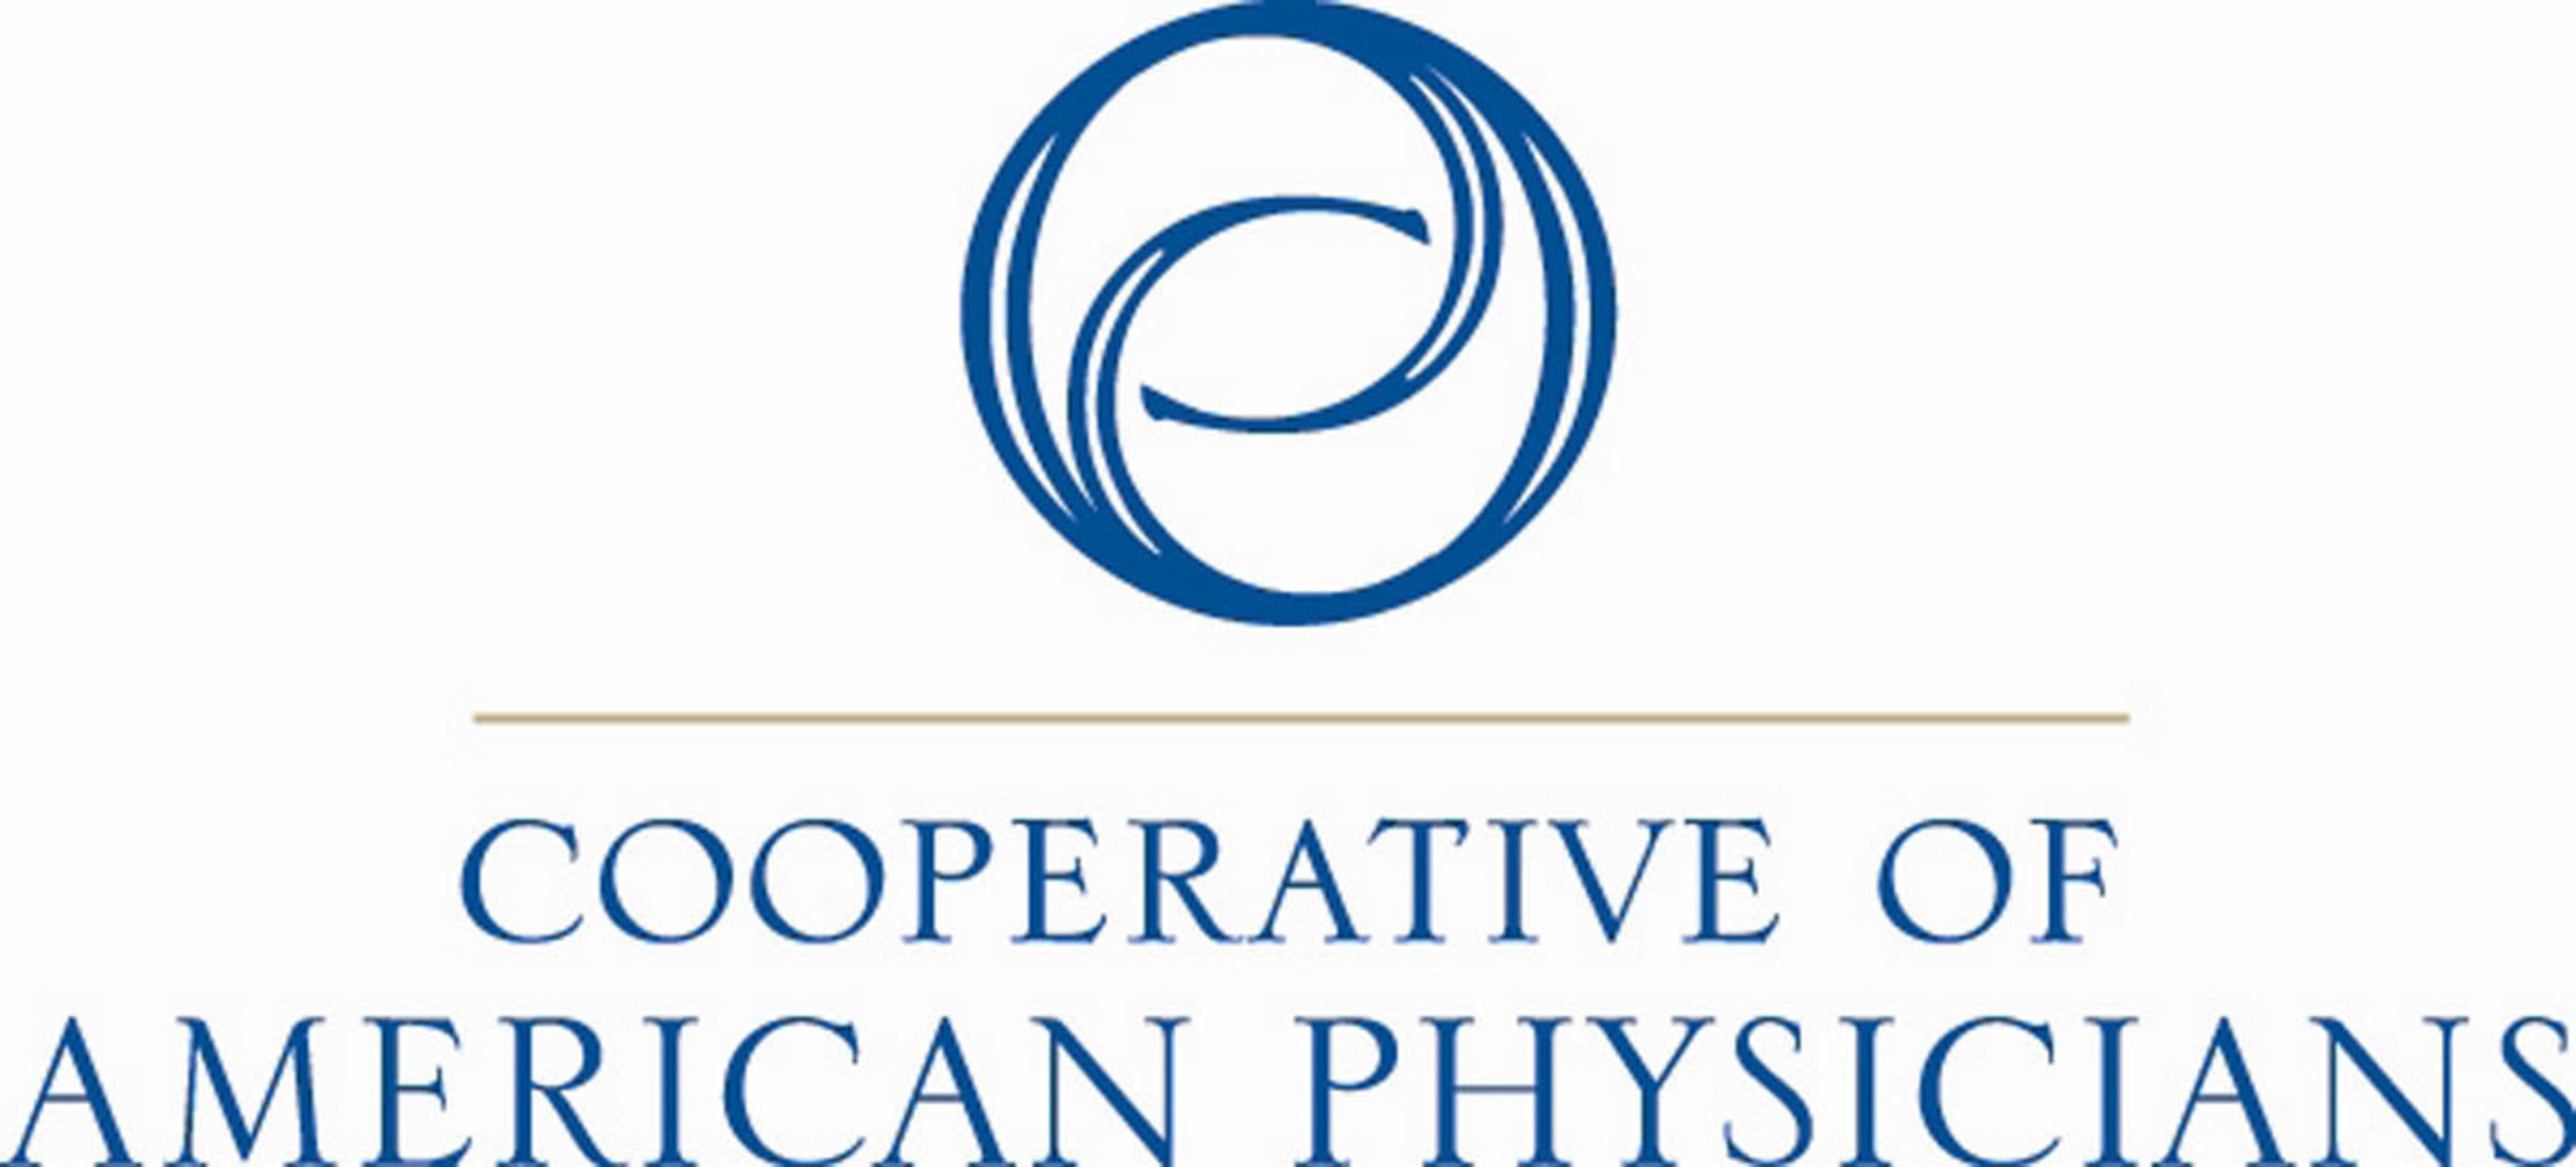 Cooperative of American Physicians, Inc. logo